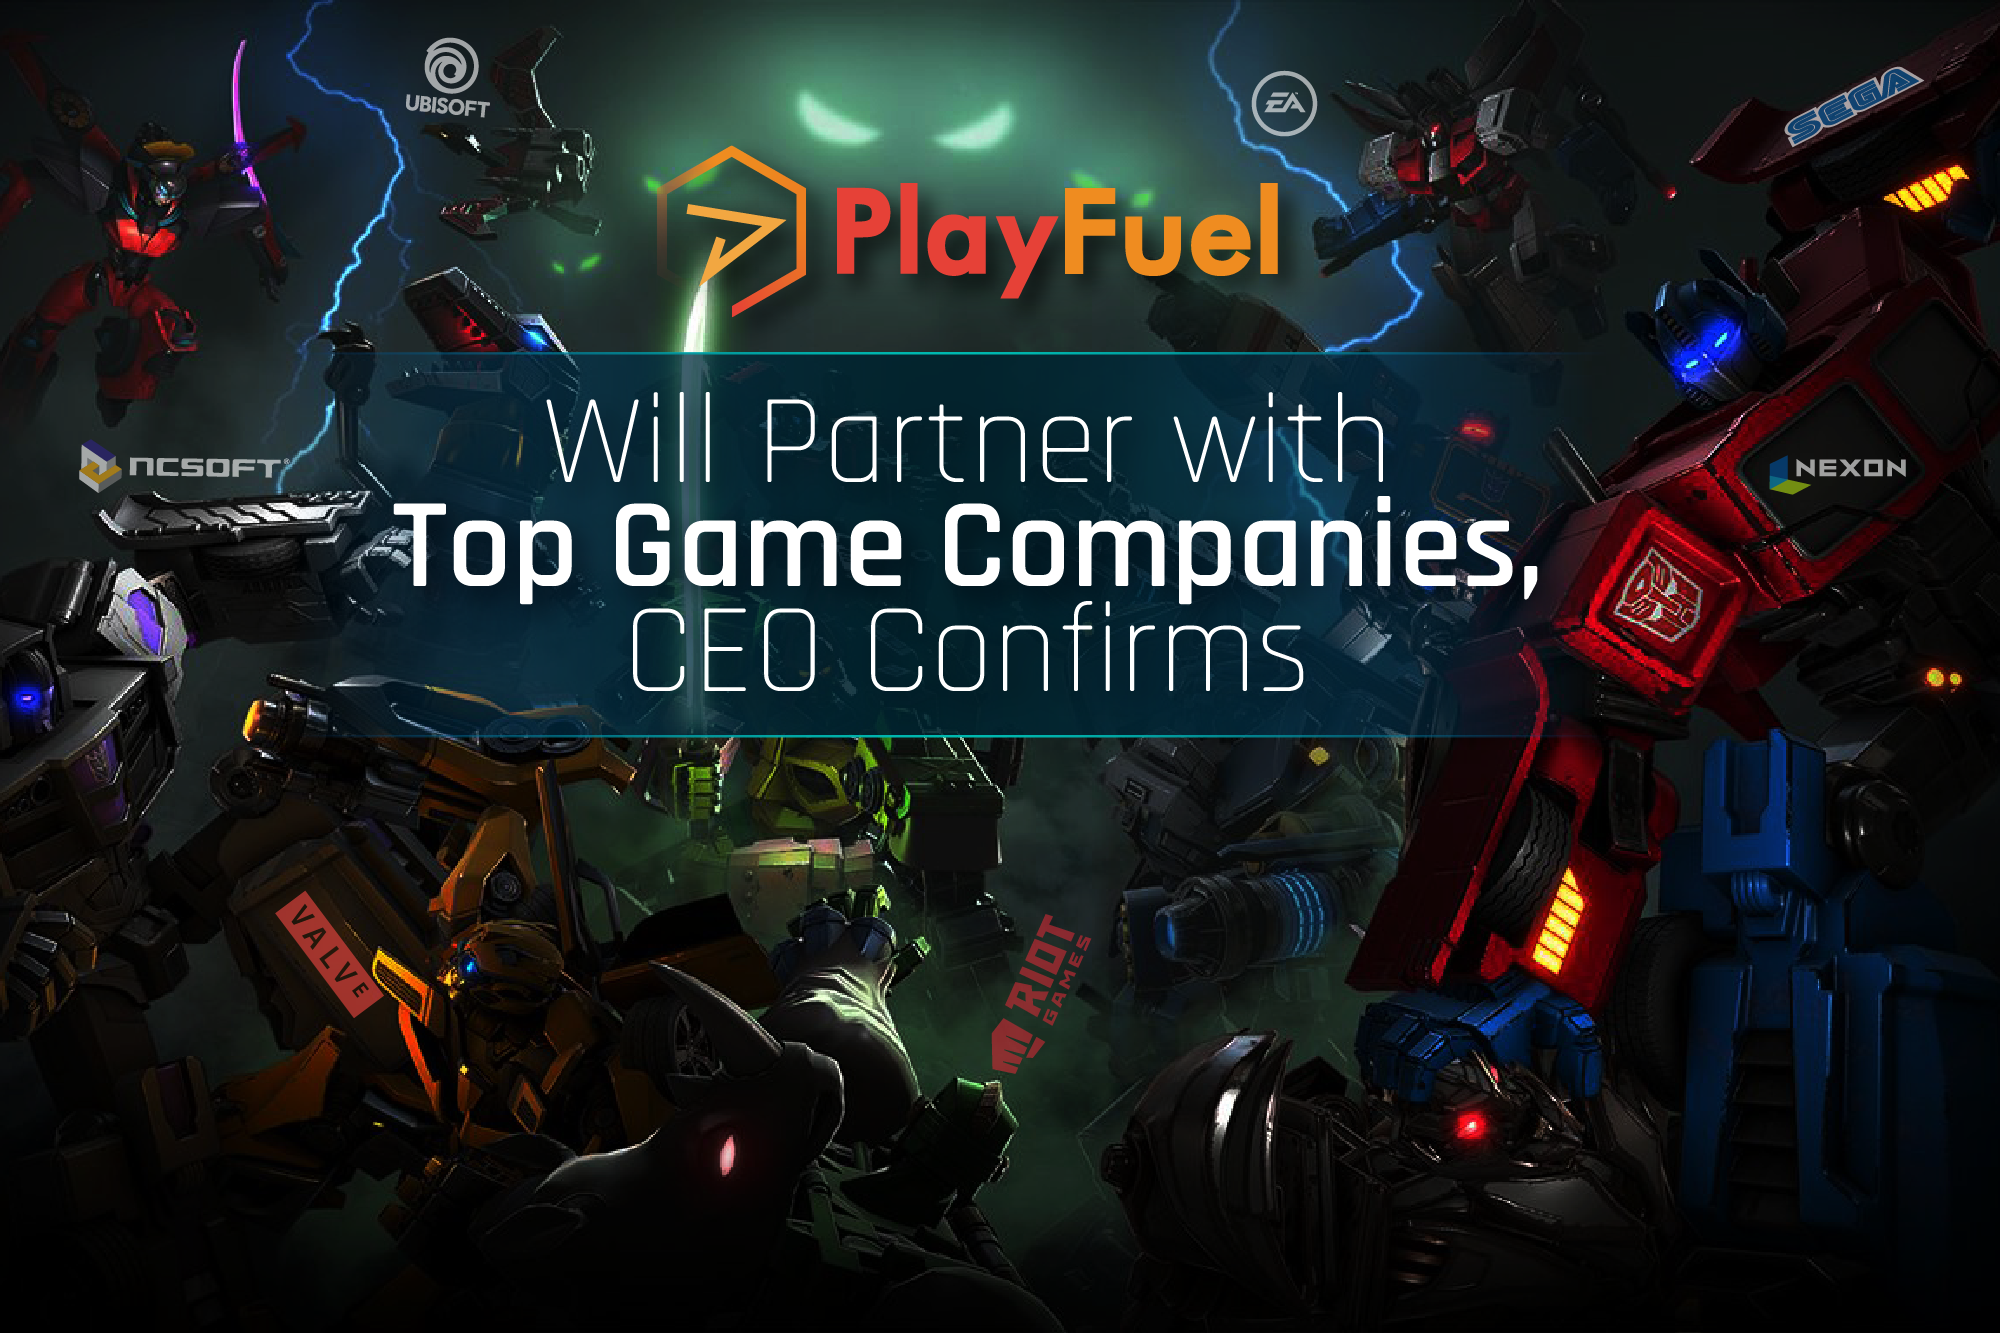 PlayFuel Will Partner with Top Game Companies, CEO Confirms